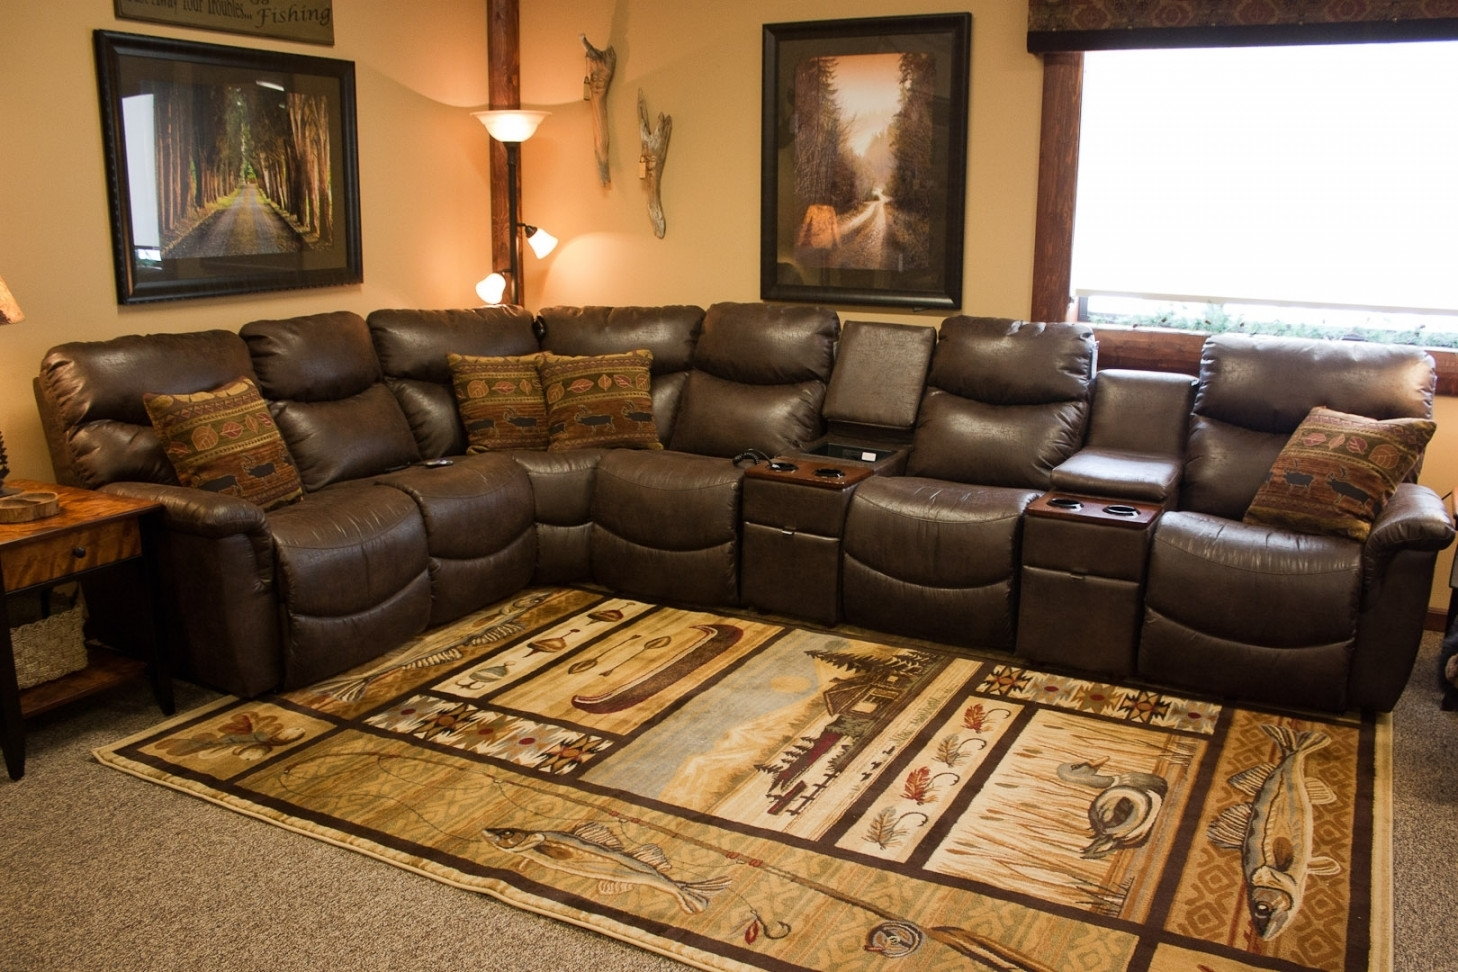 Lazy Boy Sectional Sofas | Home Design And Decorating Ideas Intended For Lazy Boy Sectional Sofas (View 4 of 10)